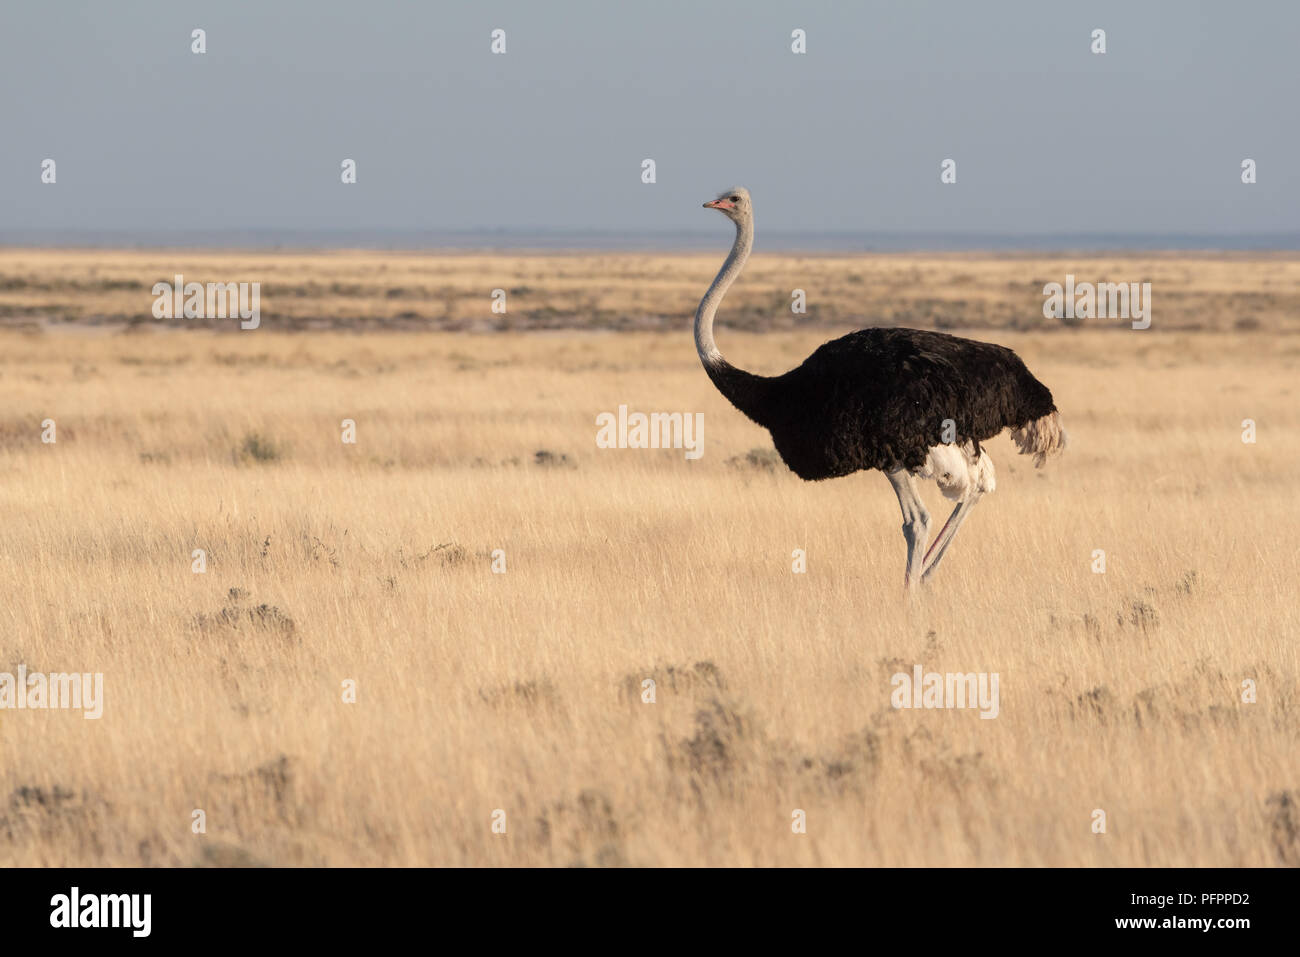 Tall ostrich standing in yellow dry grass looking over namibian savannah with blue sky, Etosha National Park, Namibia - Stock Image